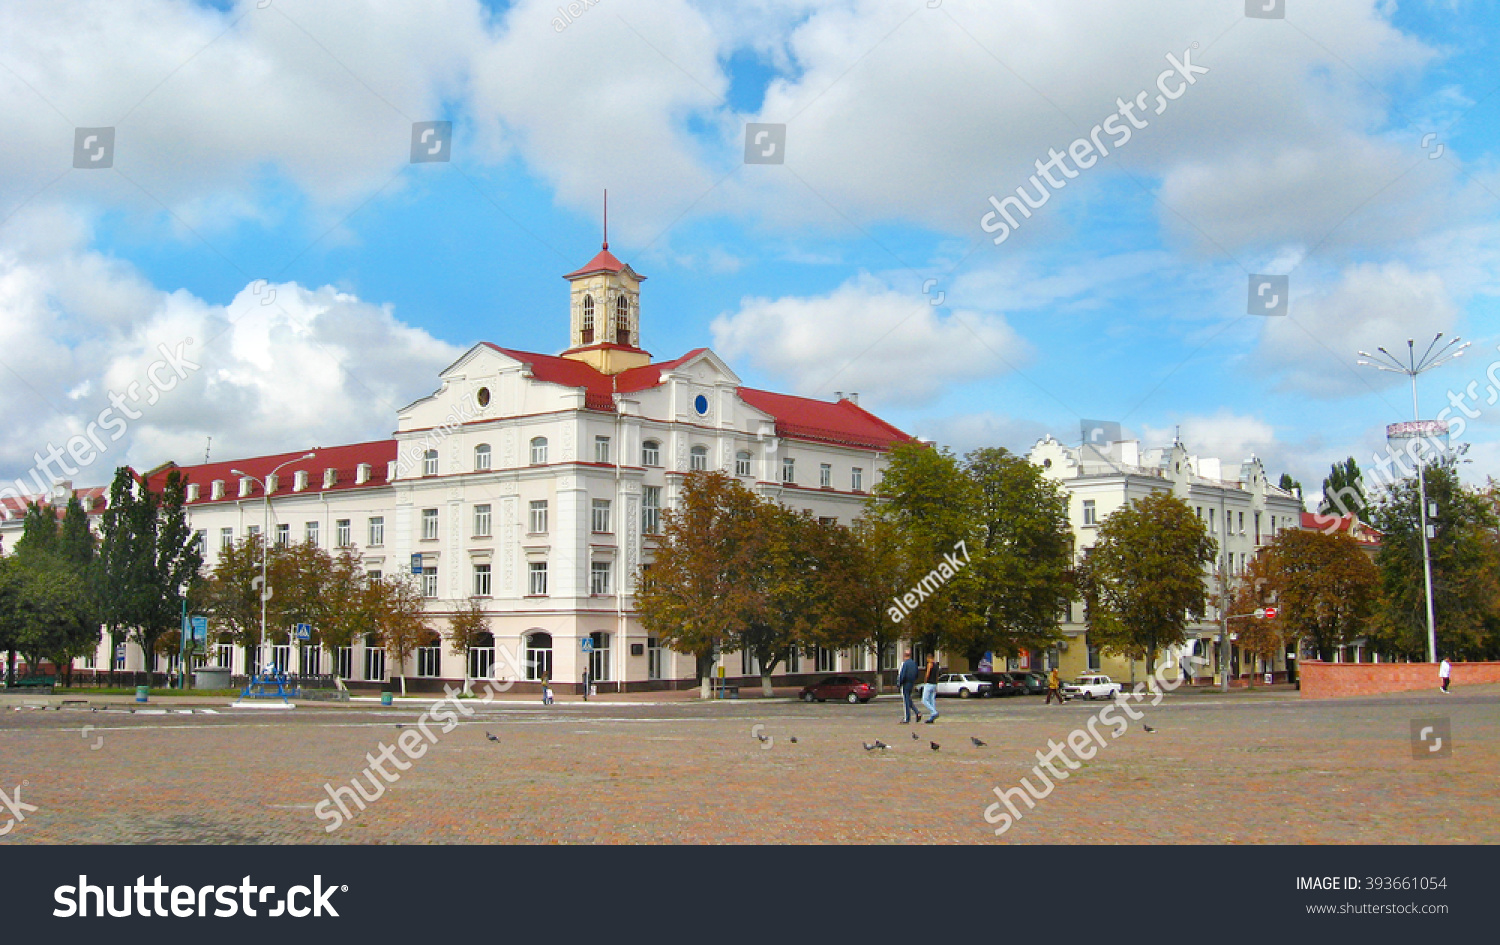 Courts of Chernihiv and Chernihiv region